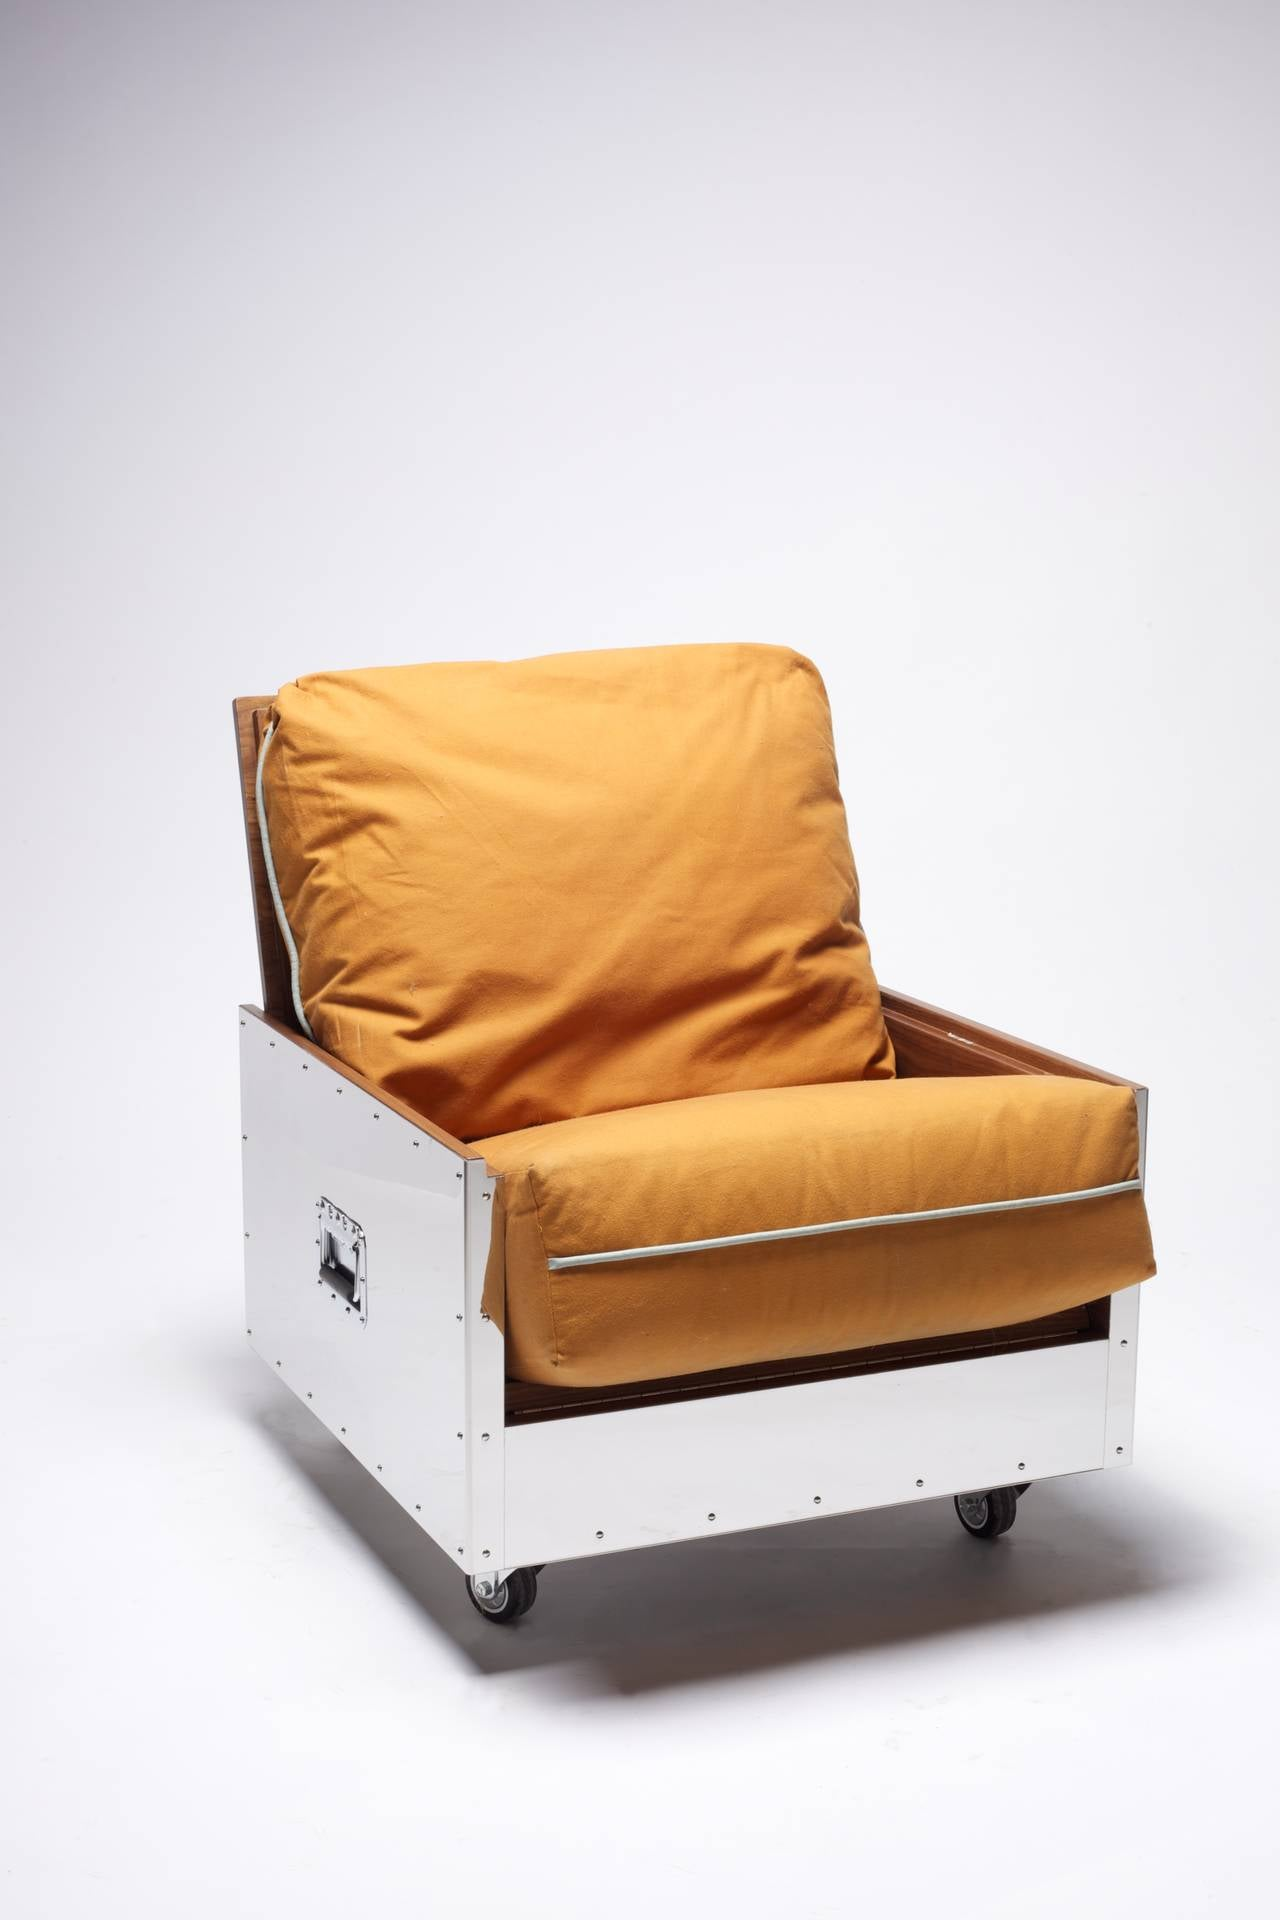 Expandable Sofa Chair Stainless Steel Frame with Cushion